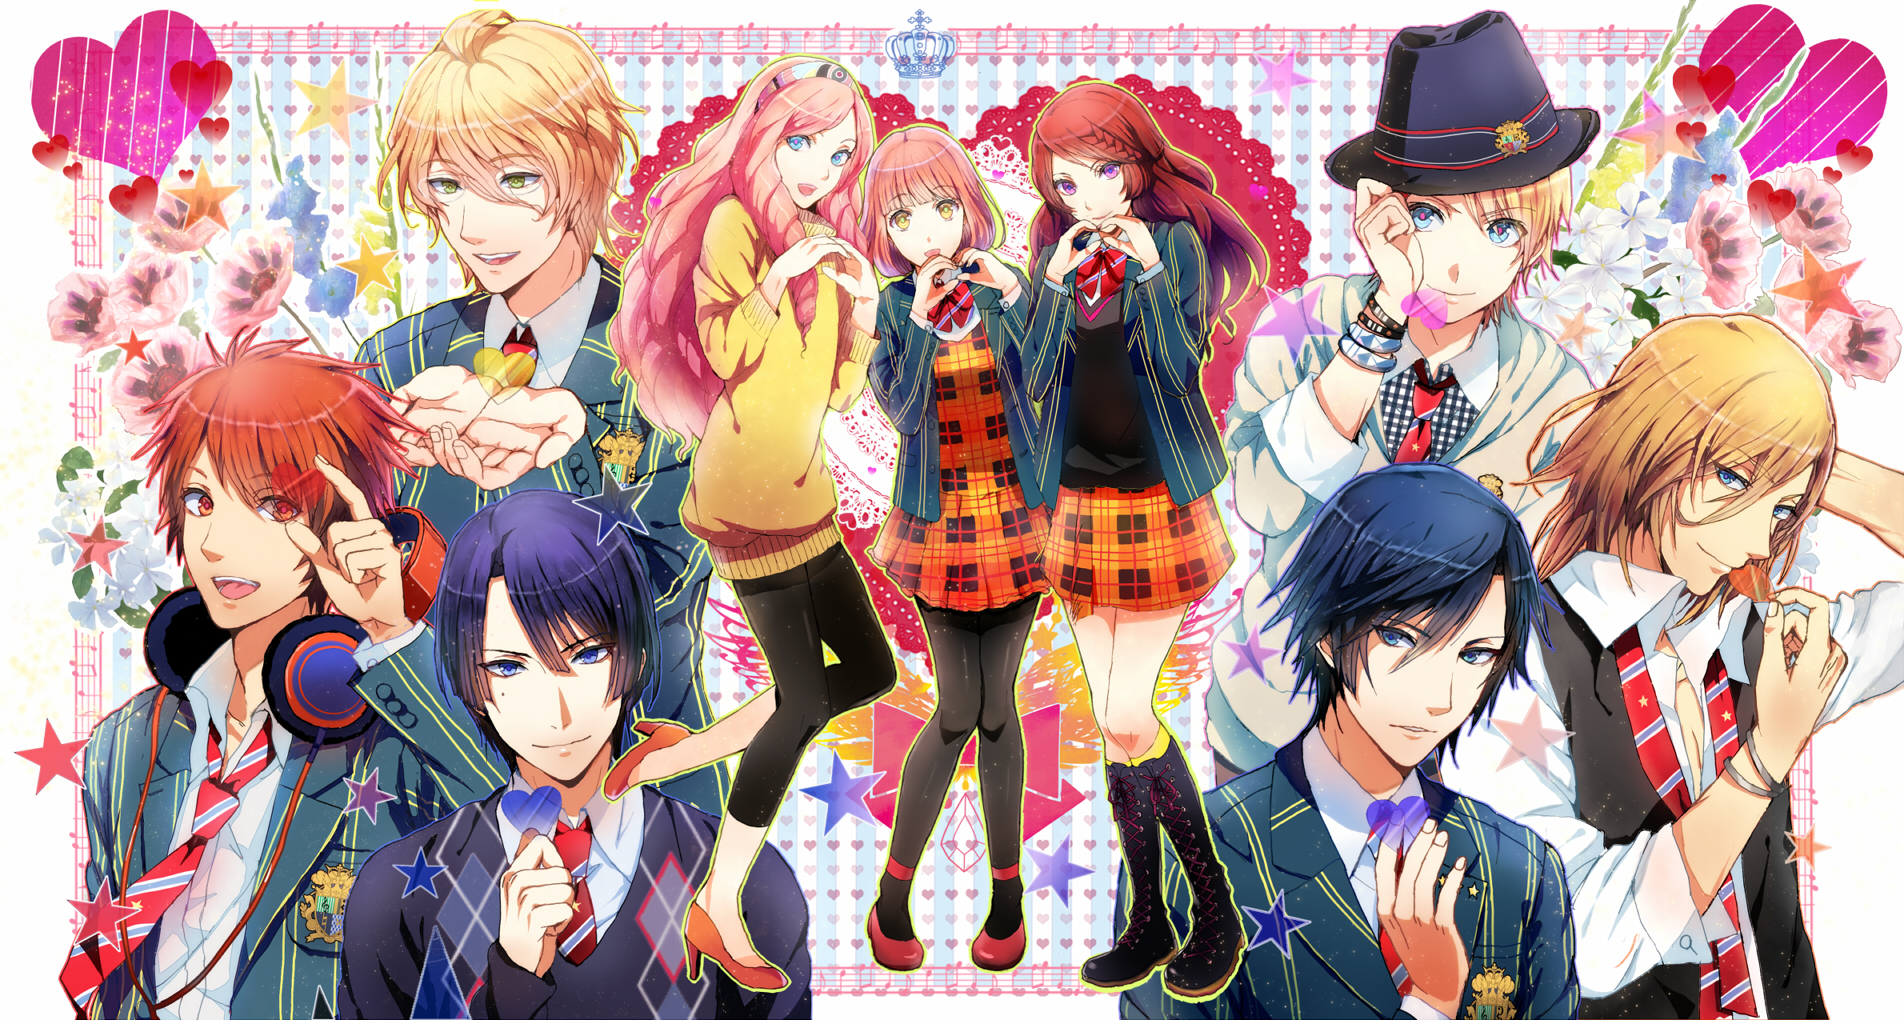 Uta No Prince-sama Pics, Anime Collection